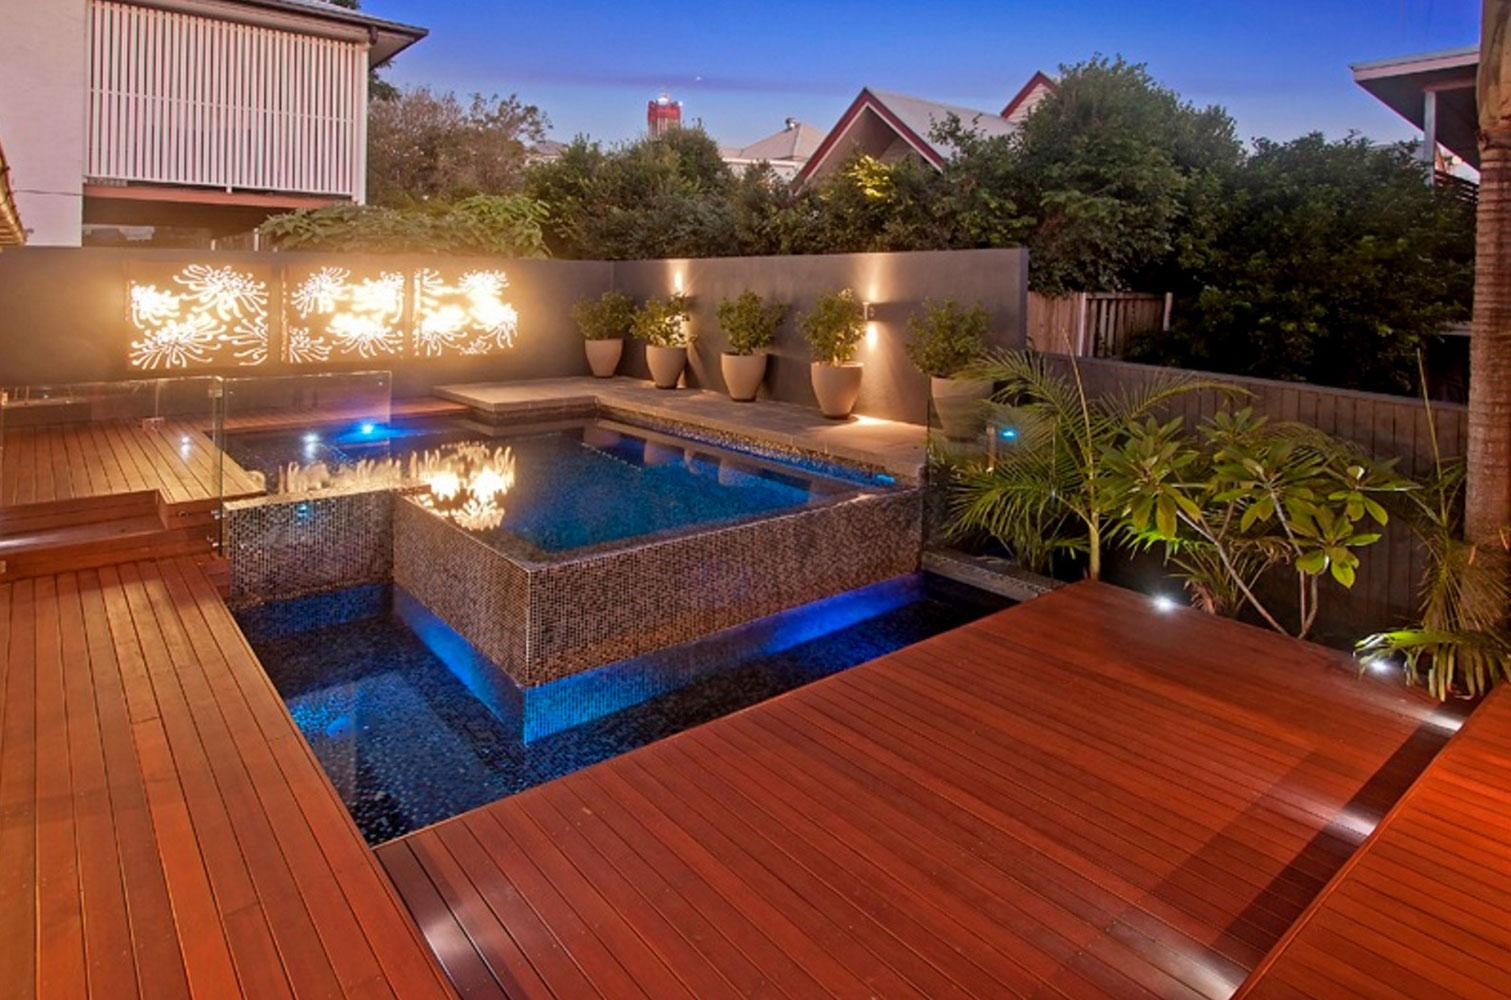 Pool Decking for inground concrete pools.